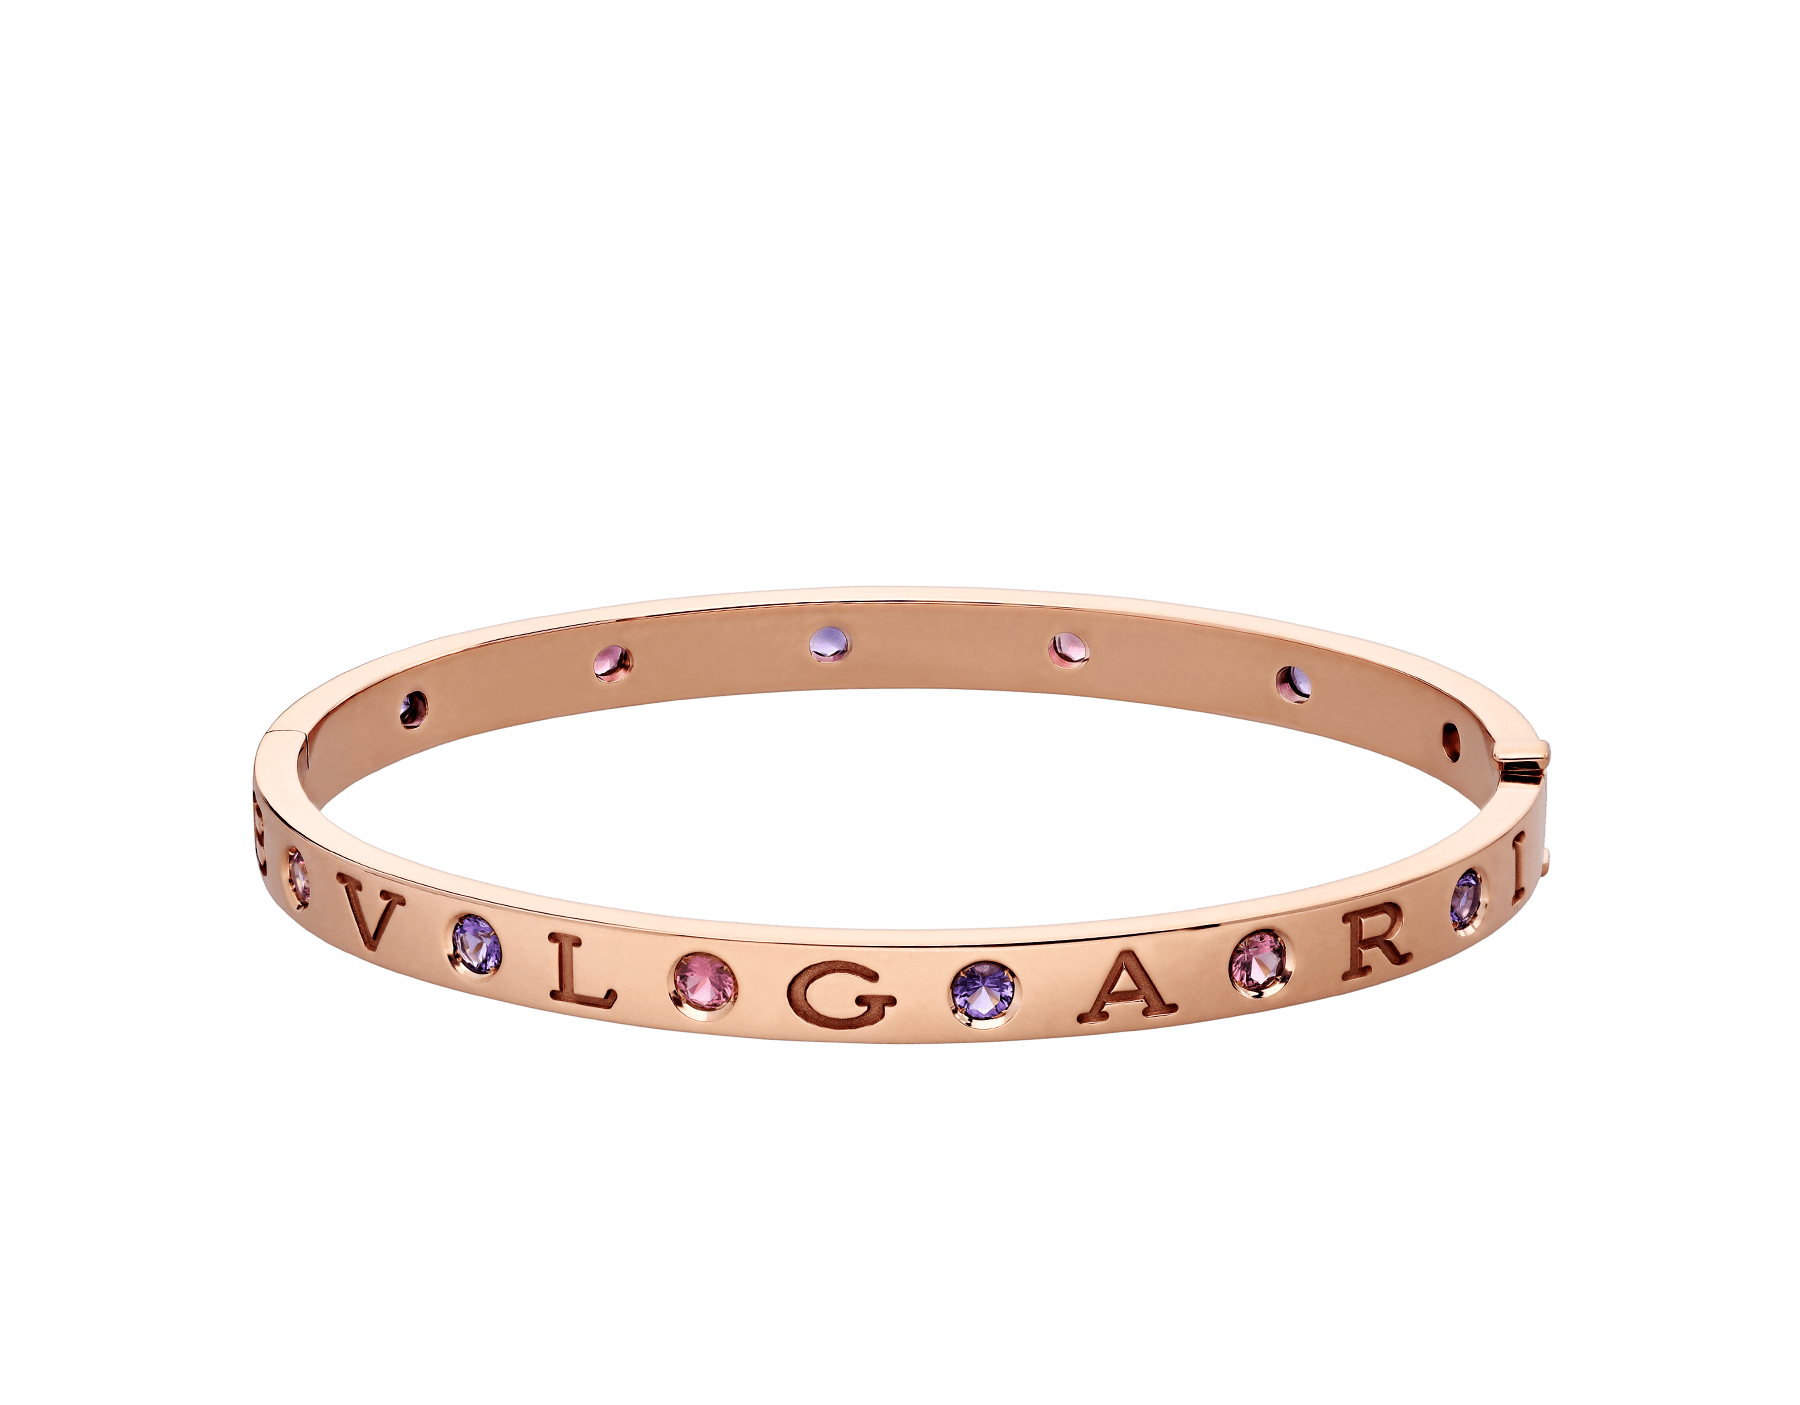 BVLGARI BVLGARI 18 kt rose gold bangle bracelet set with six amethysts and six pink tourmalines BR857613 image 2